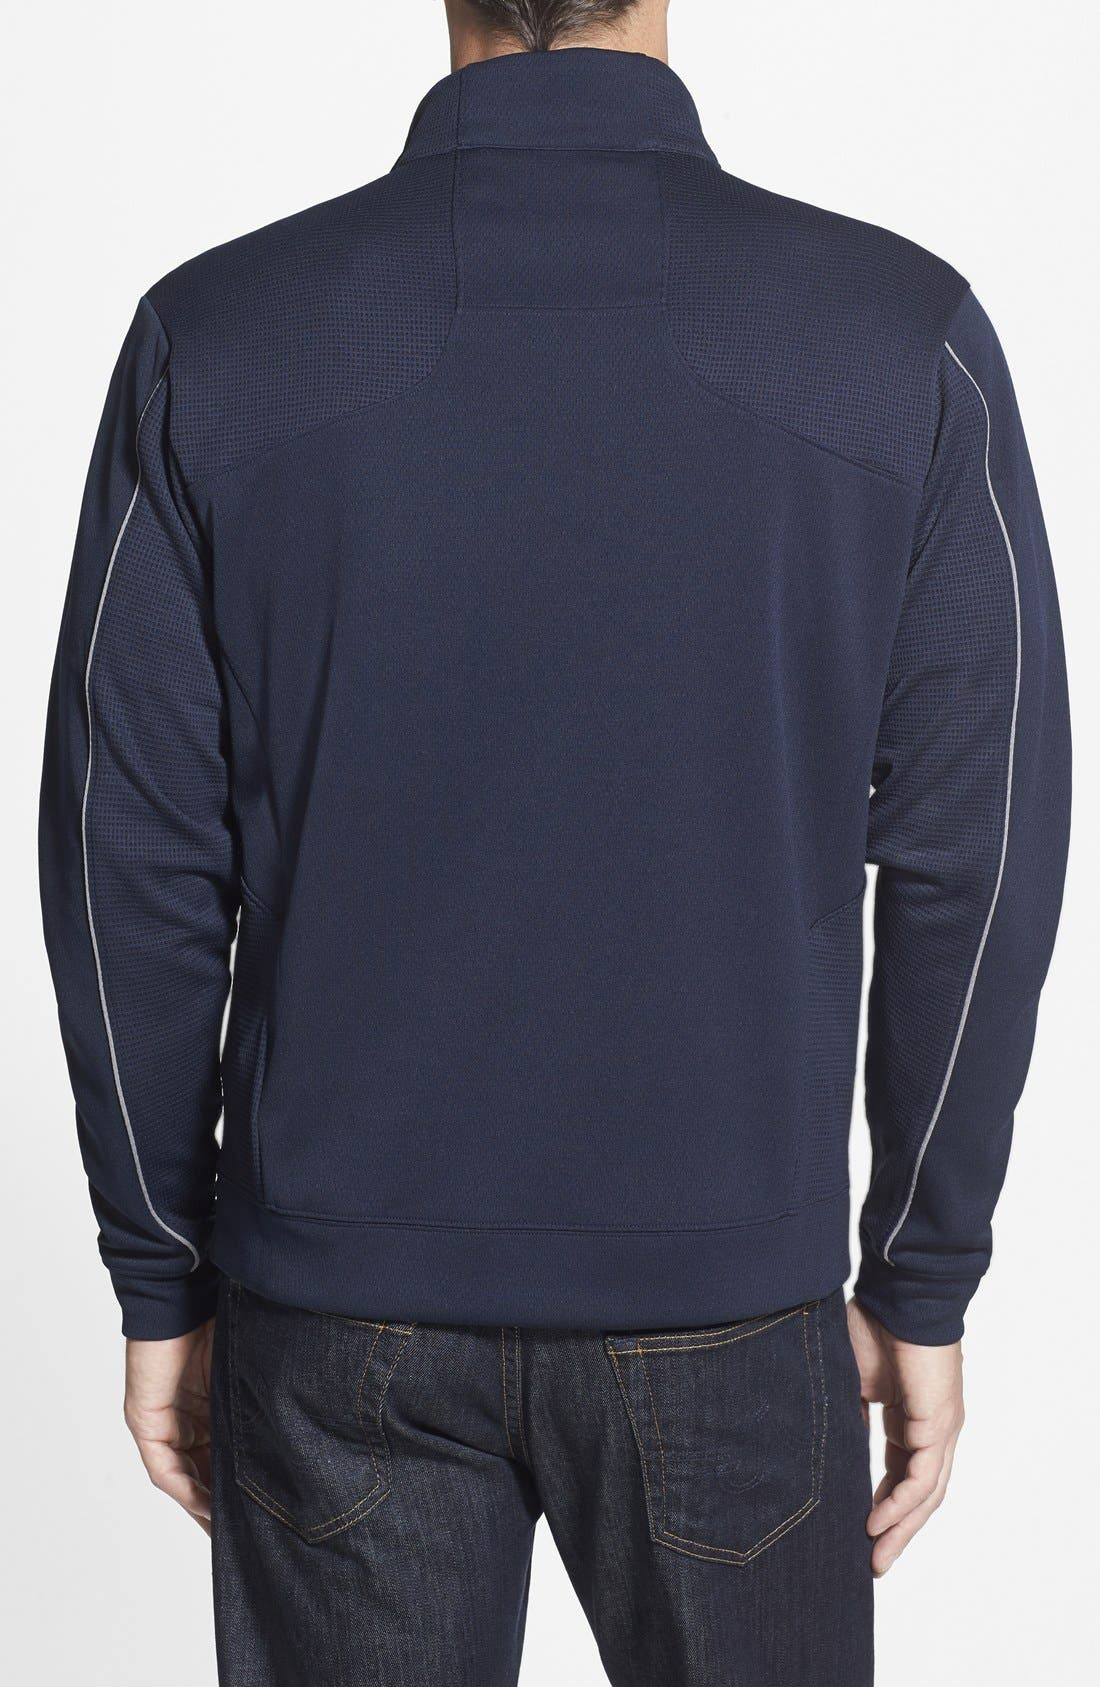 New England Patriots - Edge DryTec Moisture Wicking Half Zip Pullover,                             Alternate thumbnail 2, color,                             Navy Blue